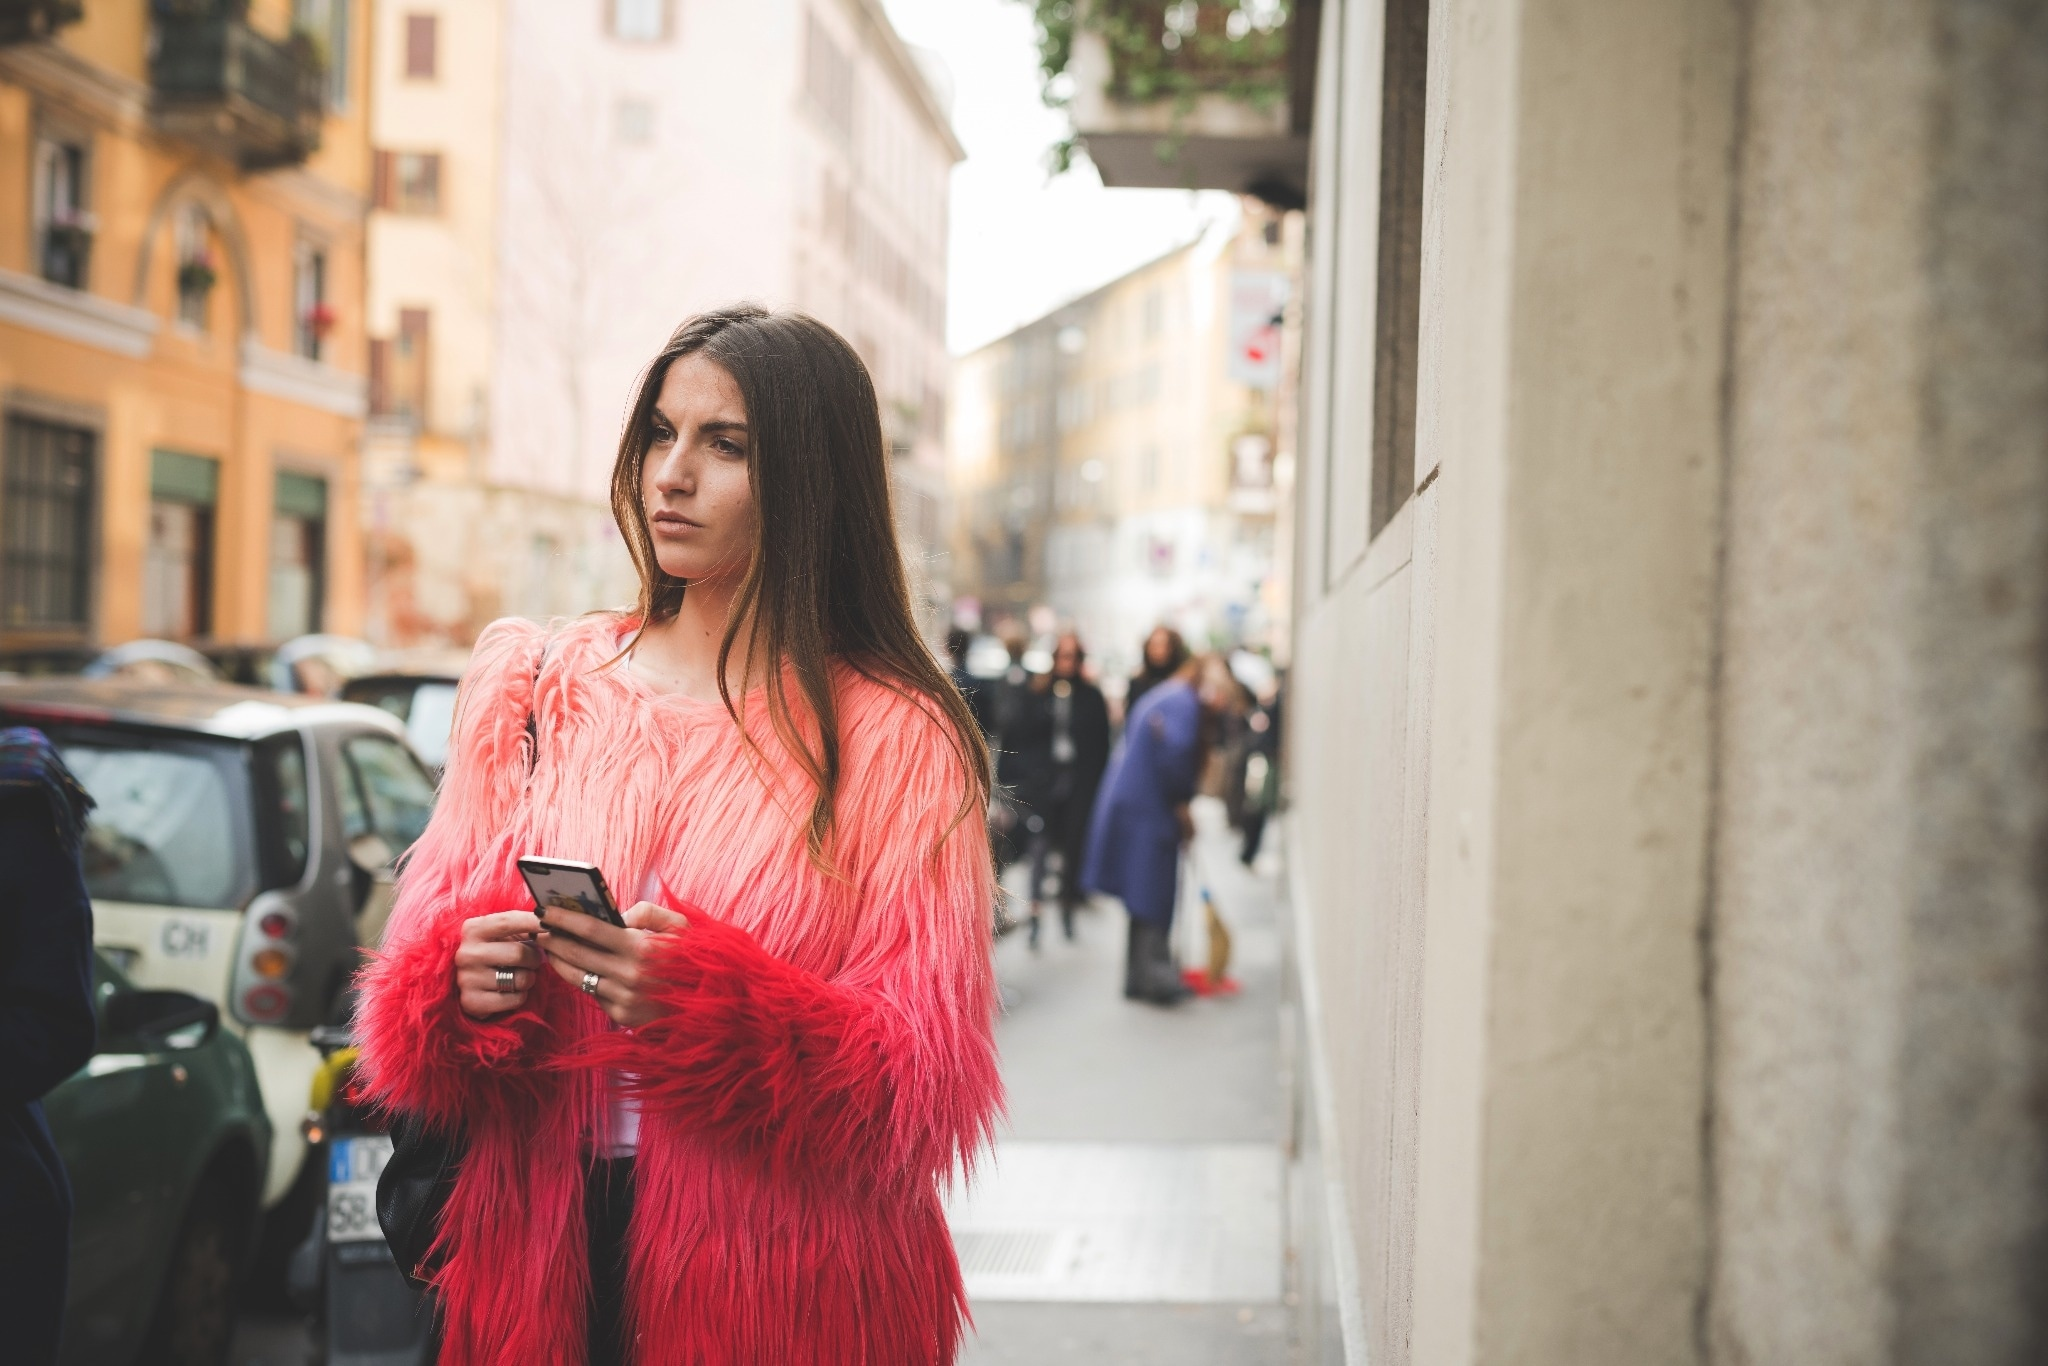 The Top 20 Fashion Micro-Influencers to Follow